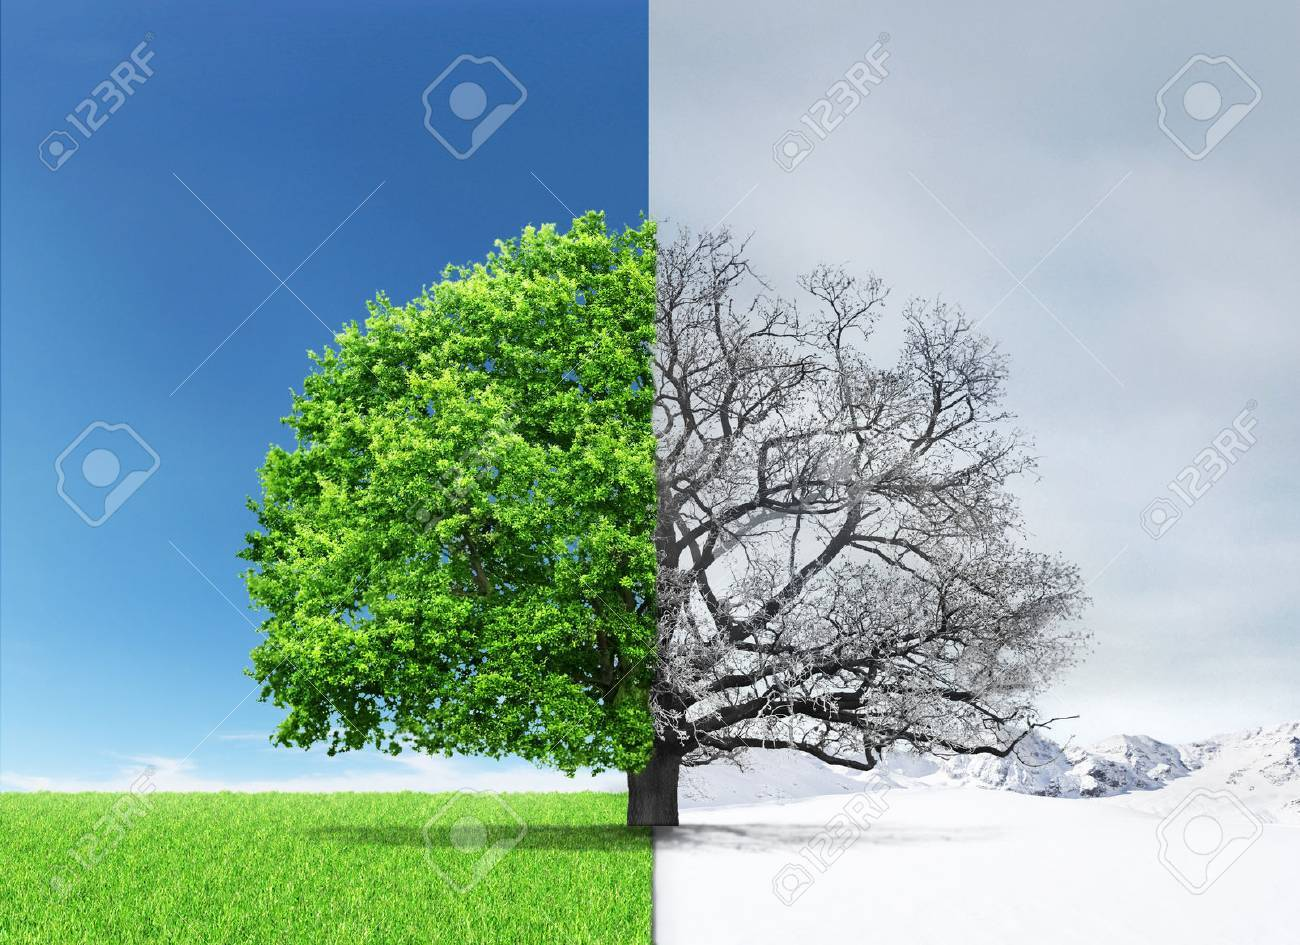 Concept of doubleness. Summer and winter of different sides with tree on the center. - 56070751